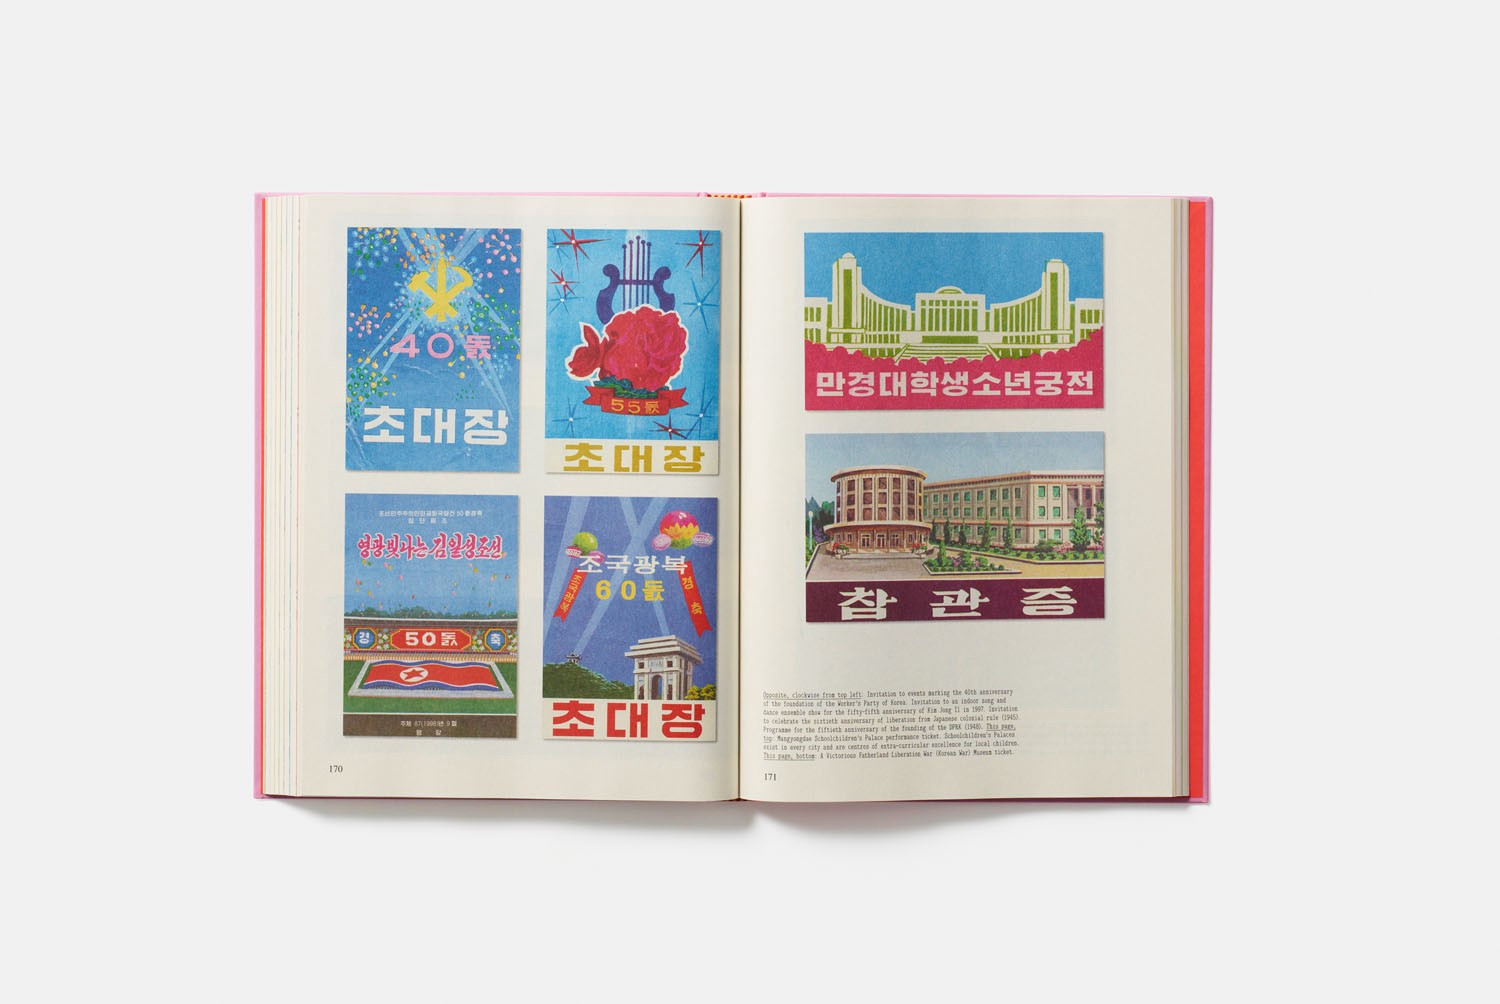 This week in design 006 designtalent nicholas bonner has released a book called made in north korea published by phaidon the book explores graphic design in north korea solutioingenieria Image collections